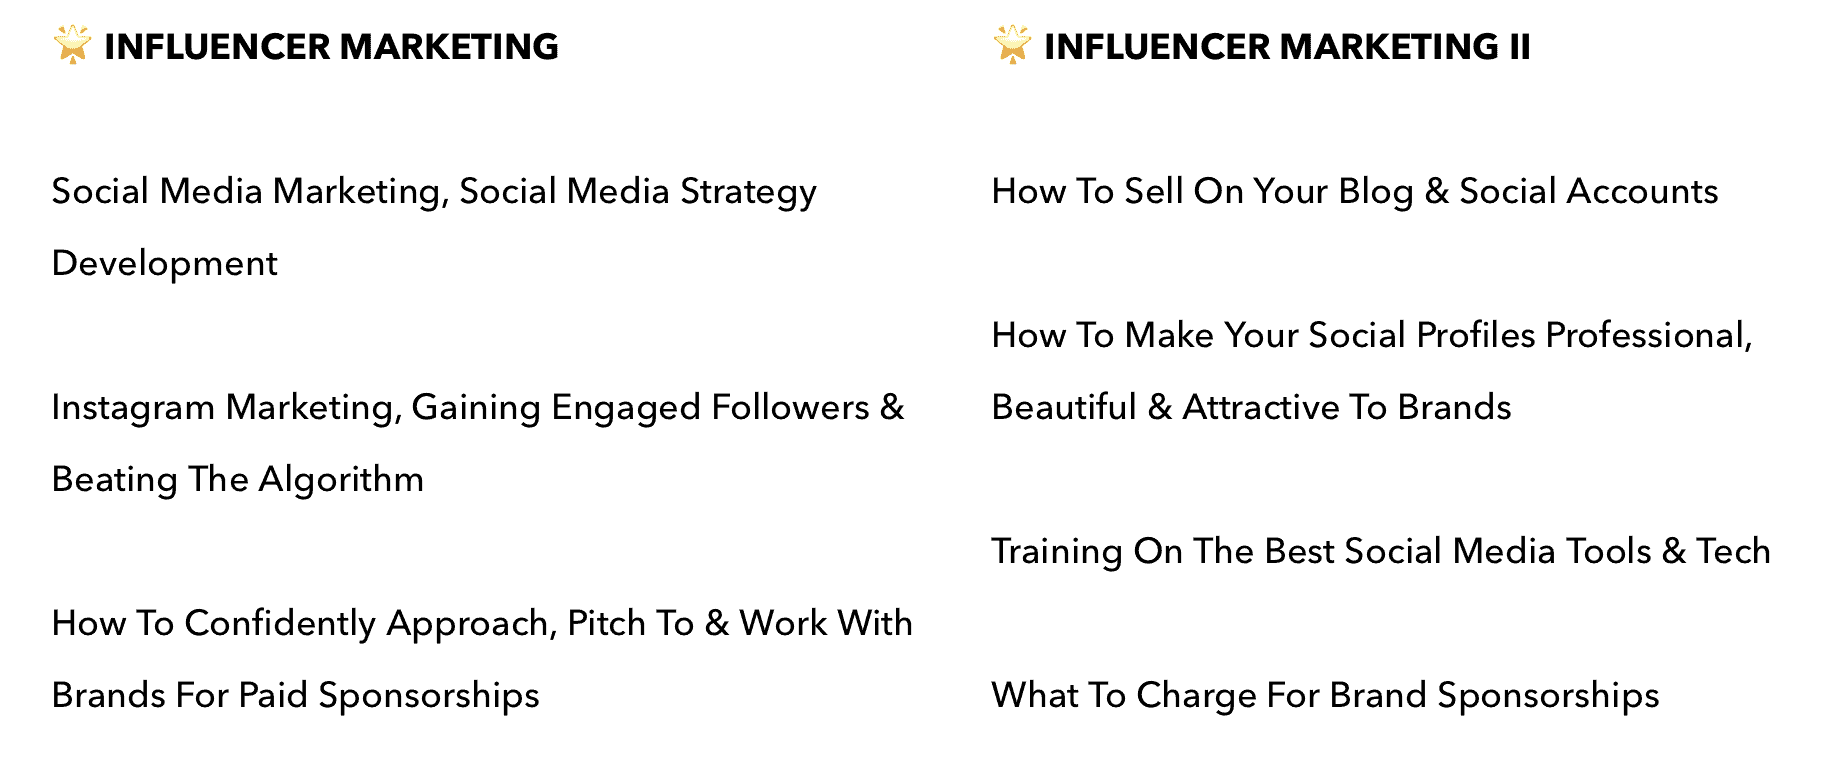 become a micro influencer - course outline